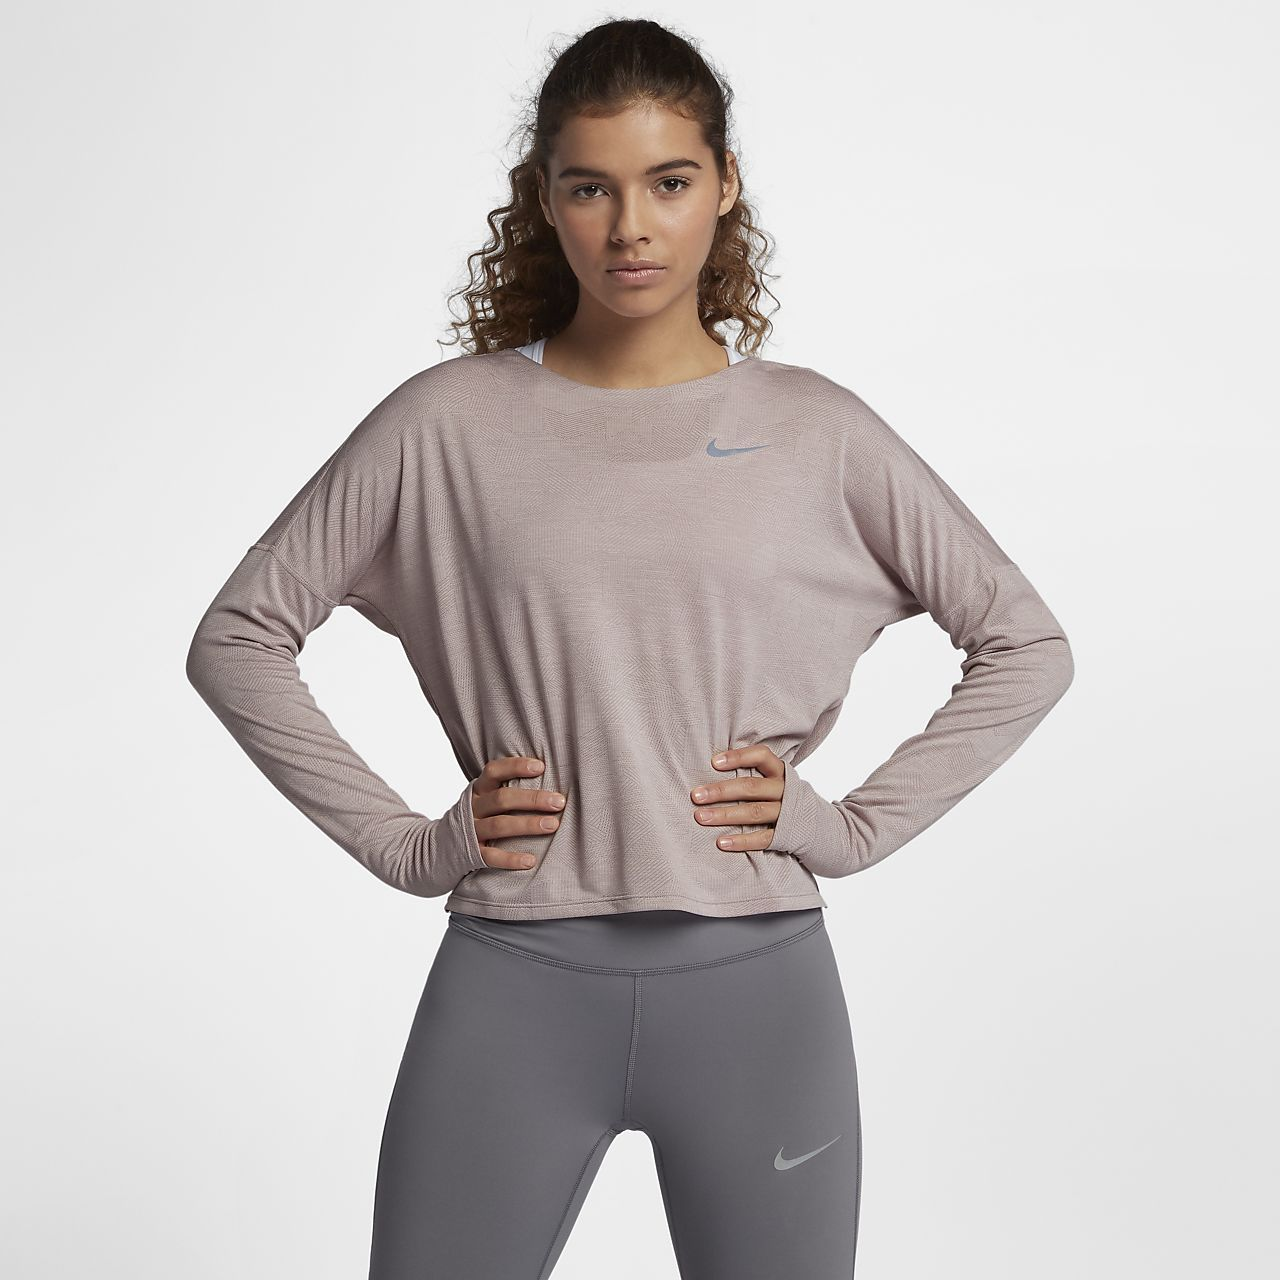 6eb16231 Nike Medalist Women's Long Sleeve Running Top in Particle Rose/Barely Rose